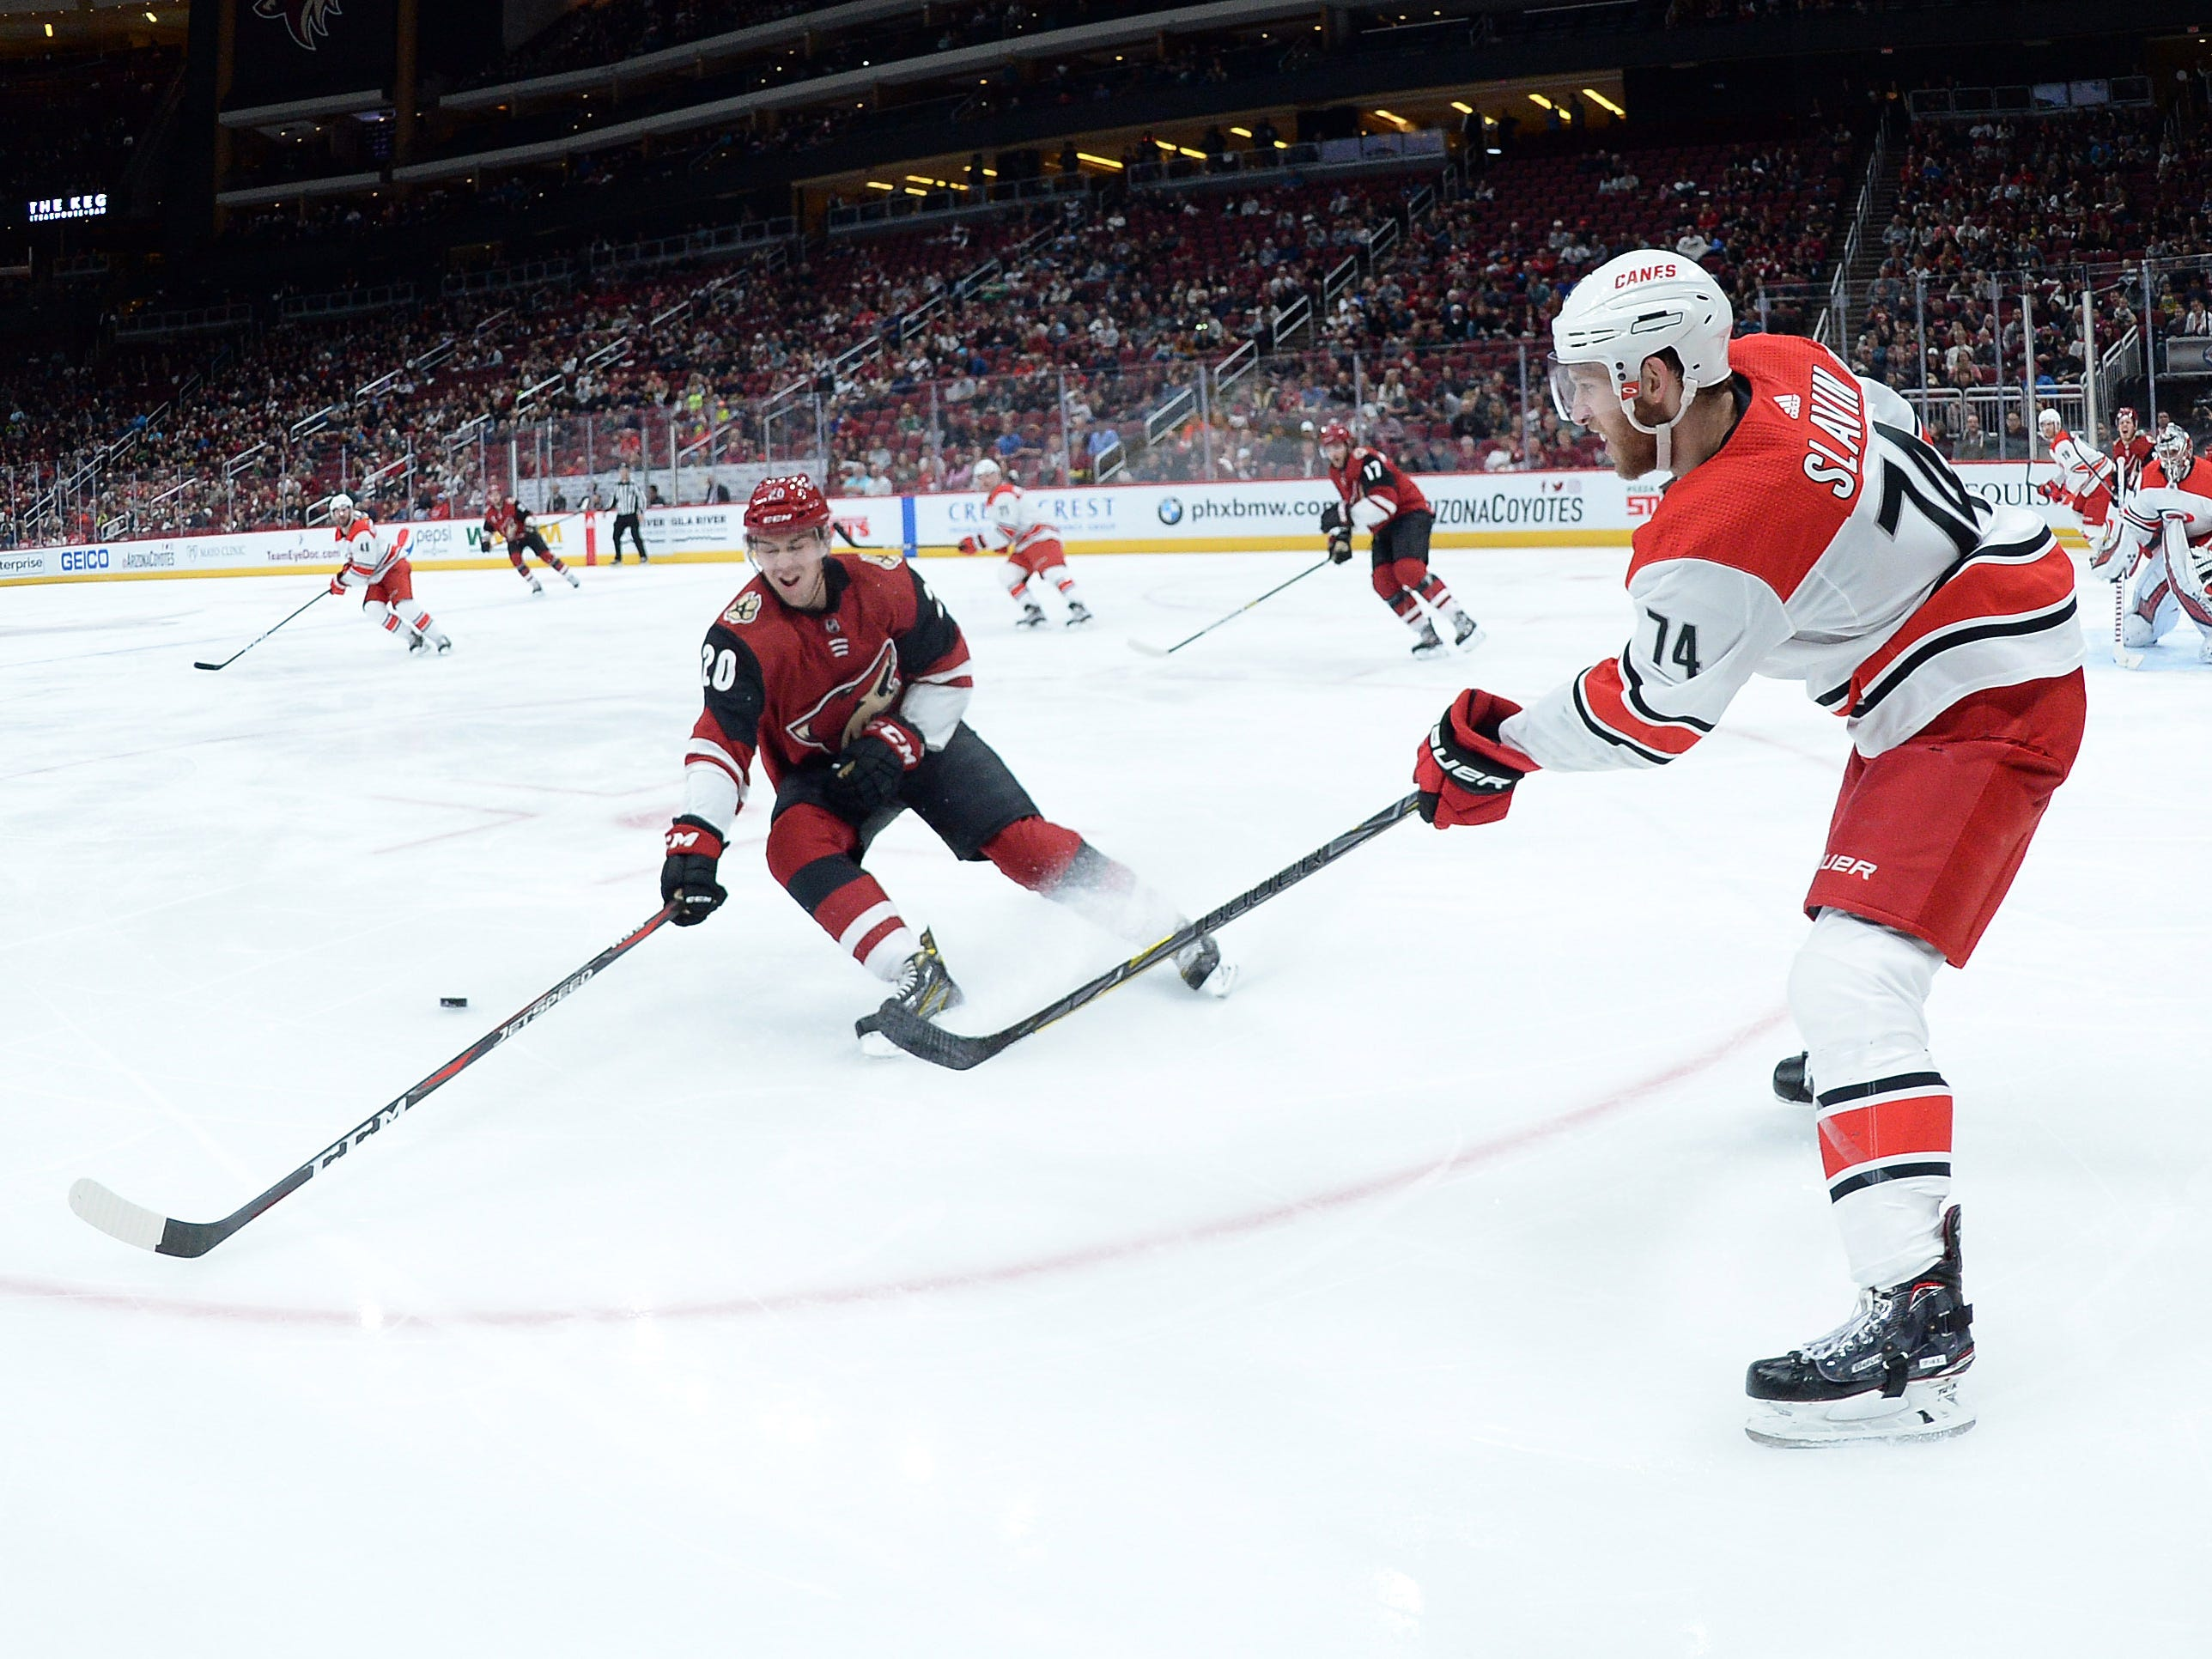 Nov 2, 2018: Carolina Hurricanes defenseman Jaccob Slavin (74) moves the puck past Arizona Coyotes center Dylan Strome (20) during the second period at Gila River Arena.